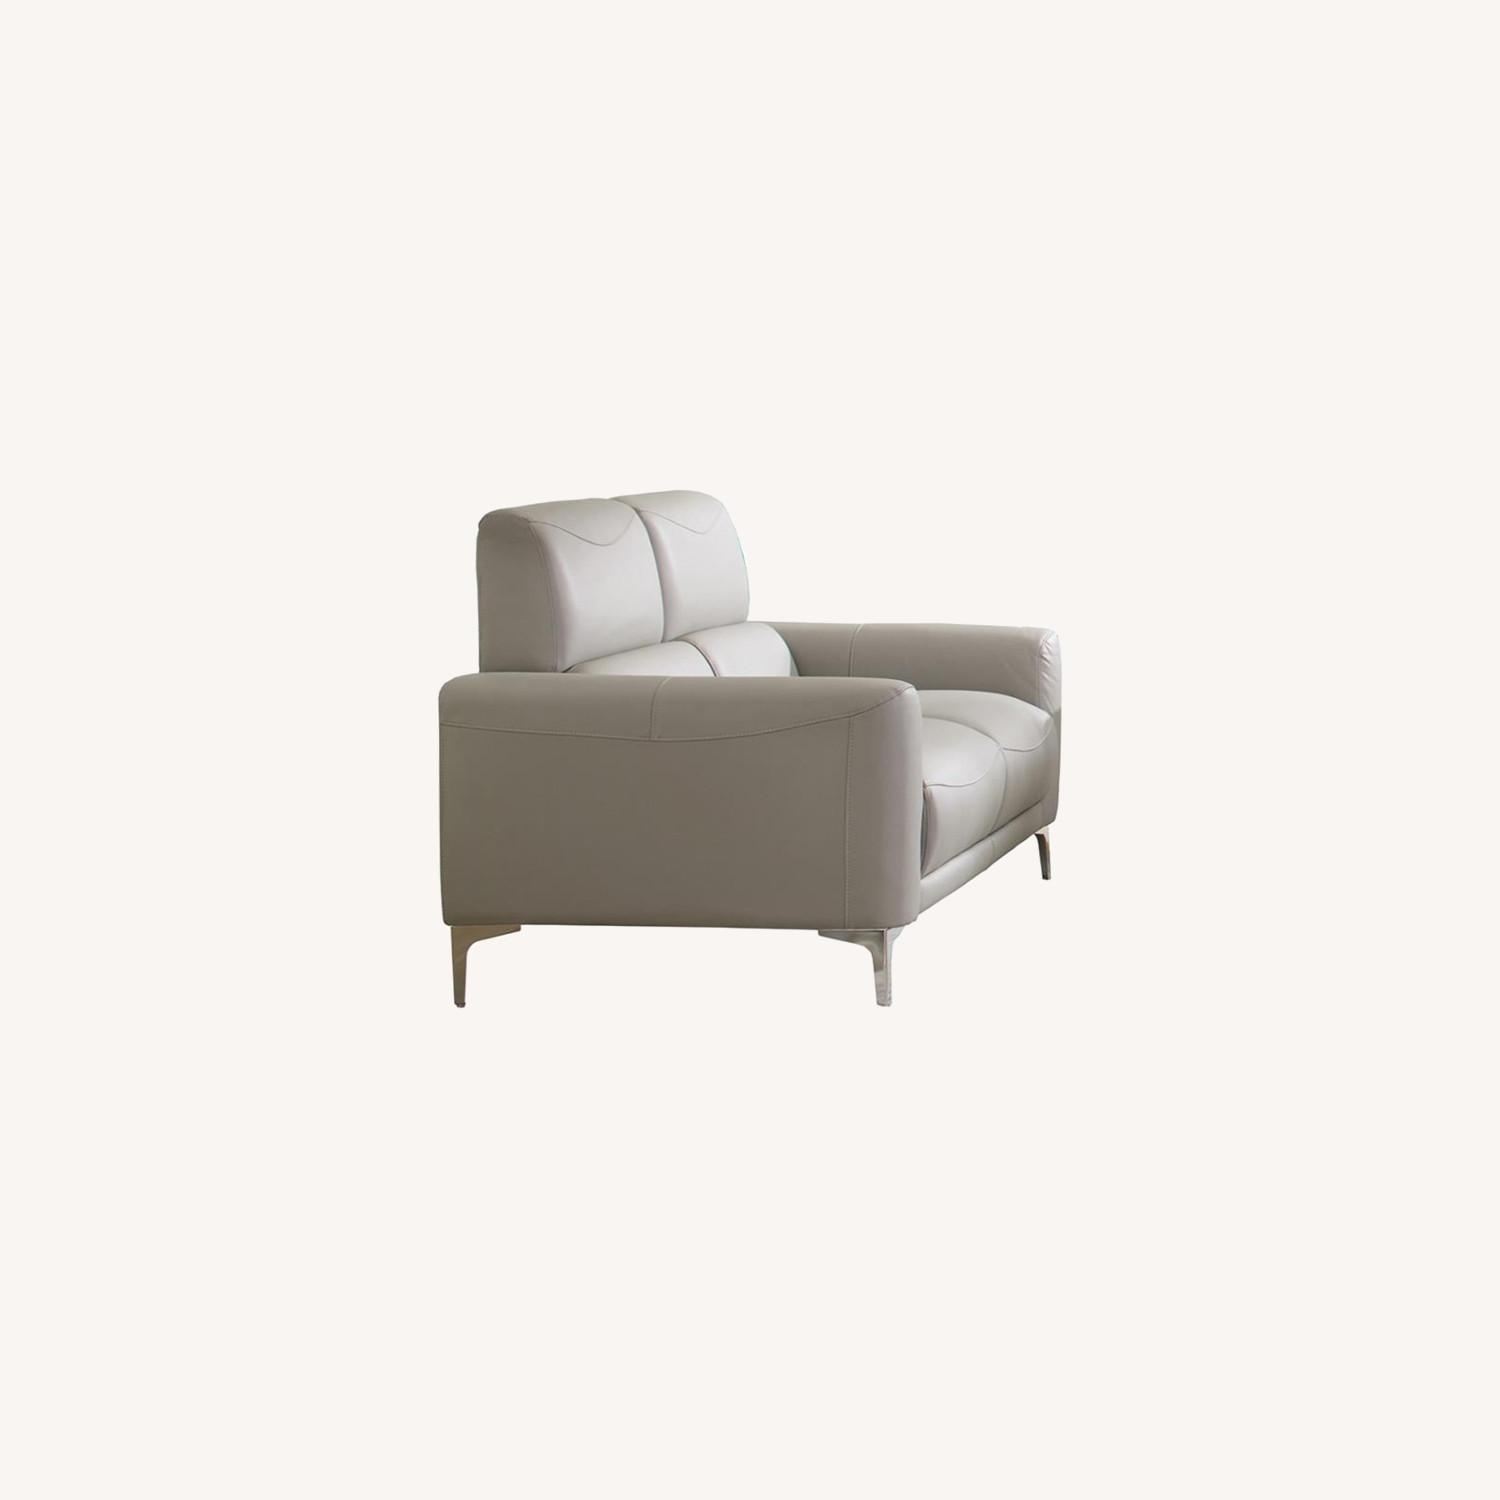 Loveseat In Soft Taupe Leatherette Upholstery - image-4